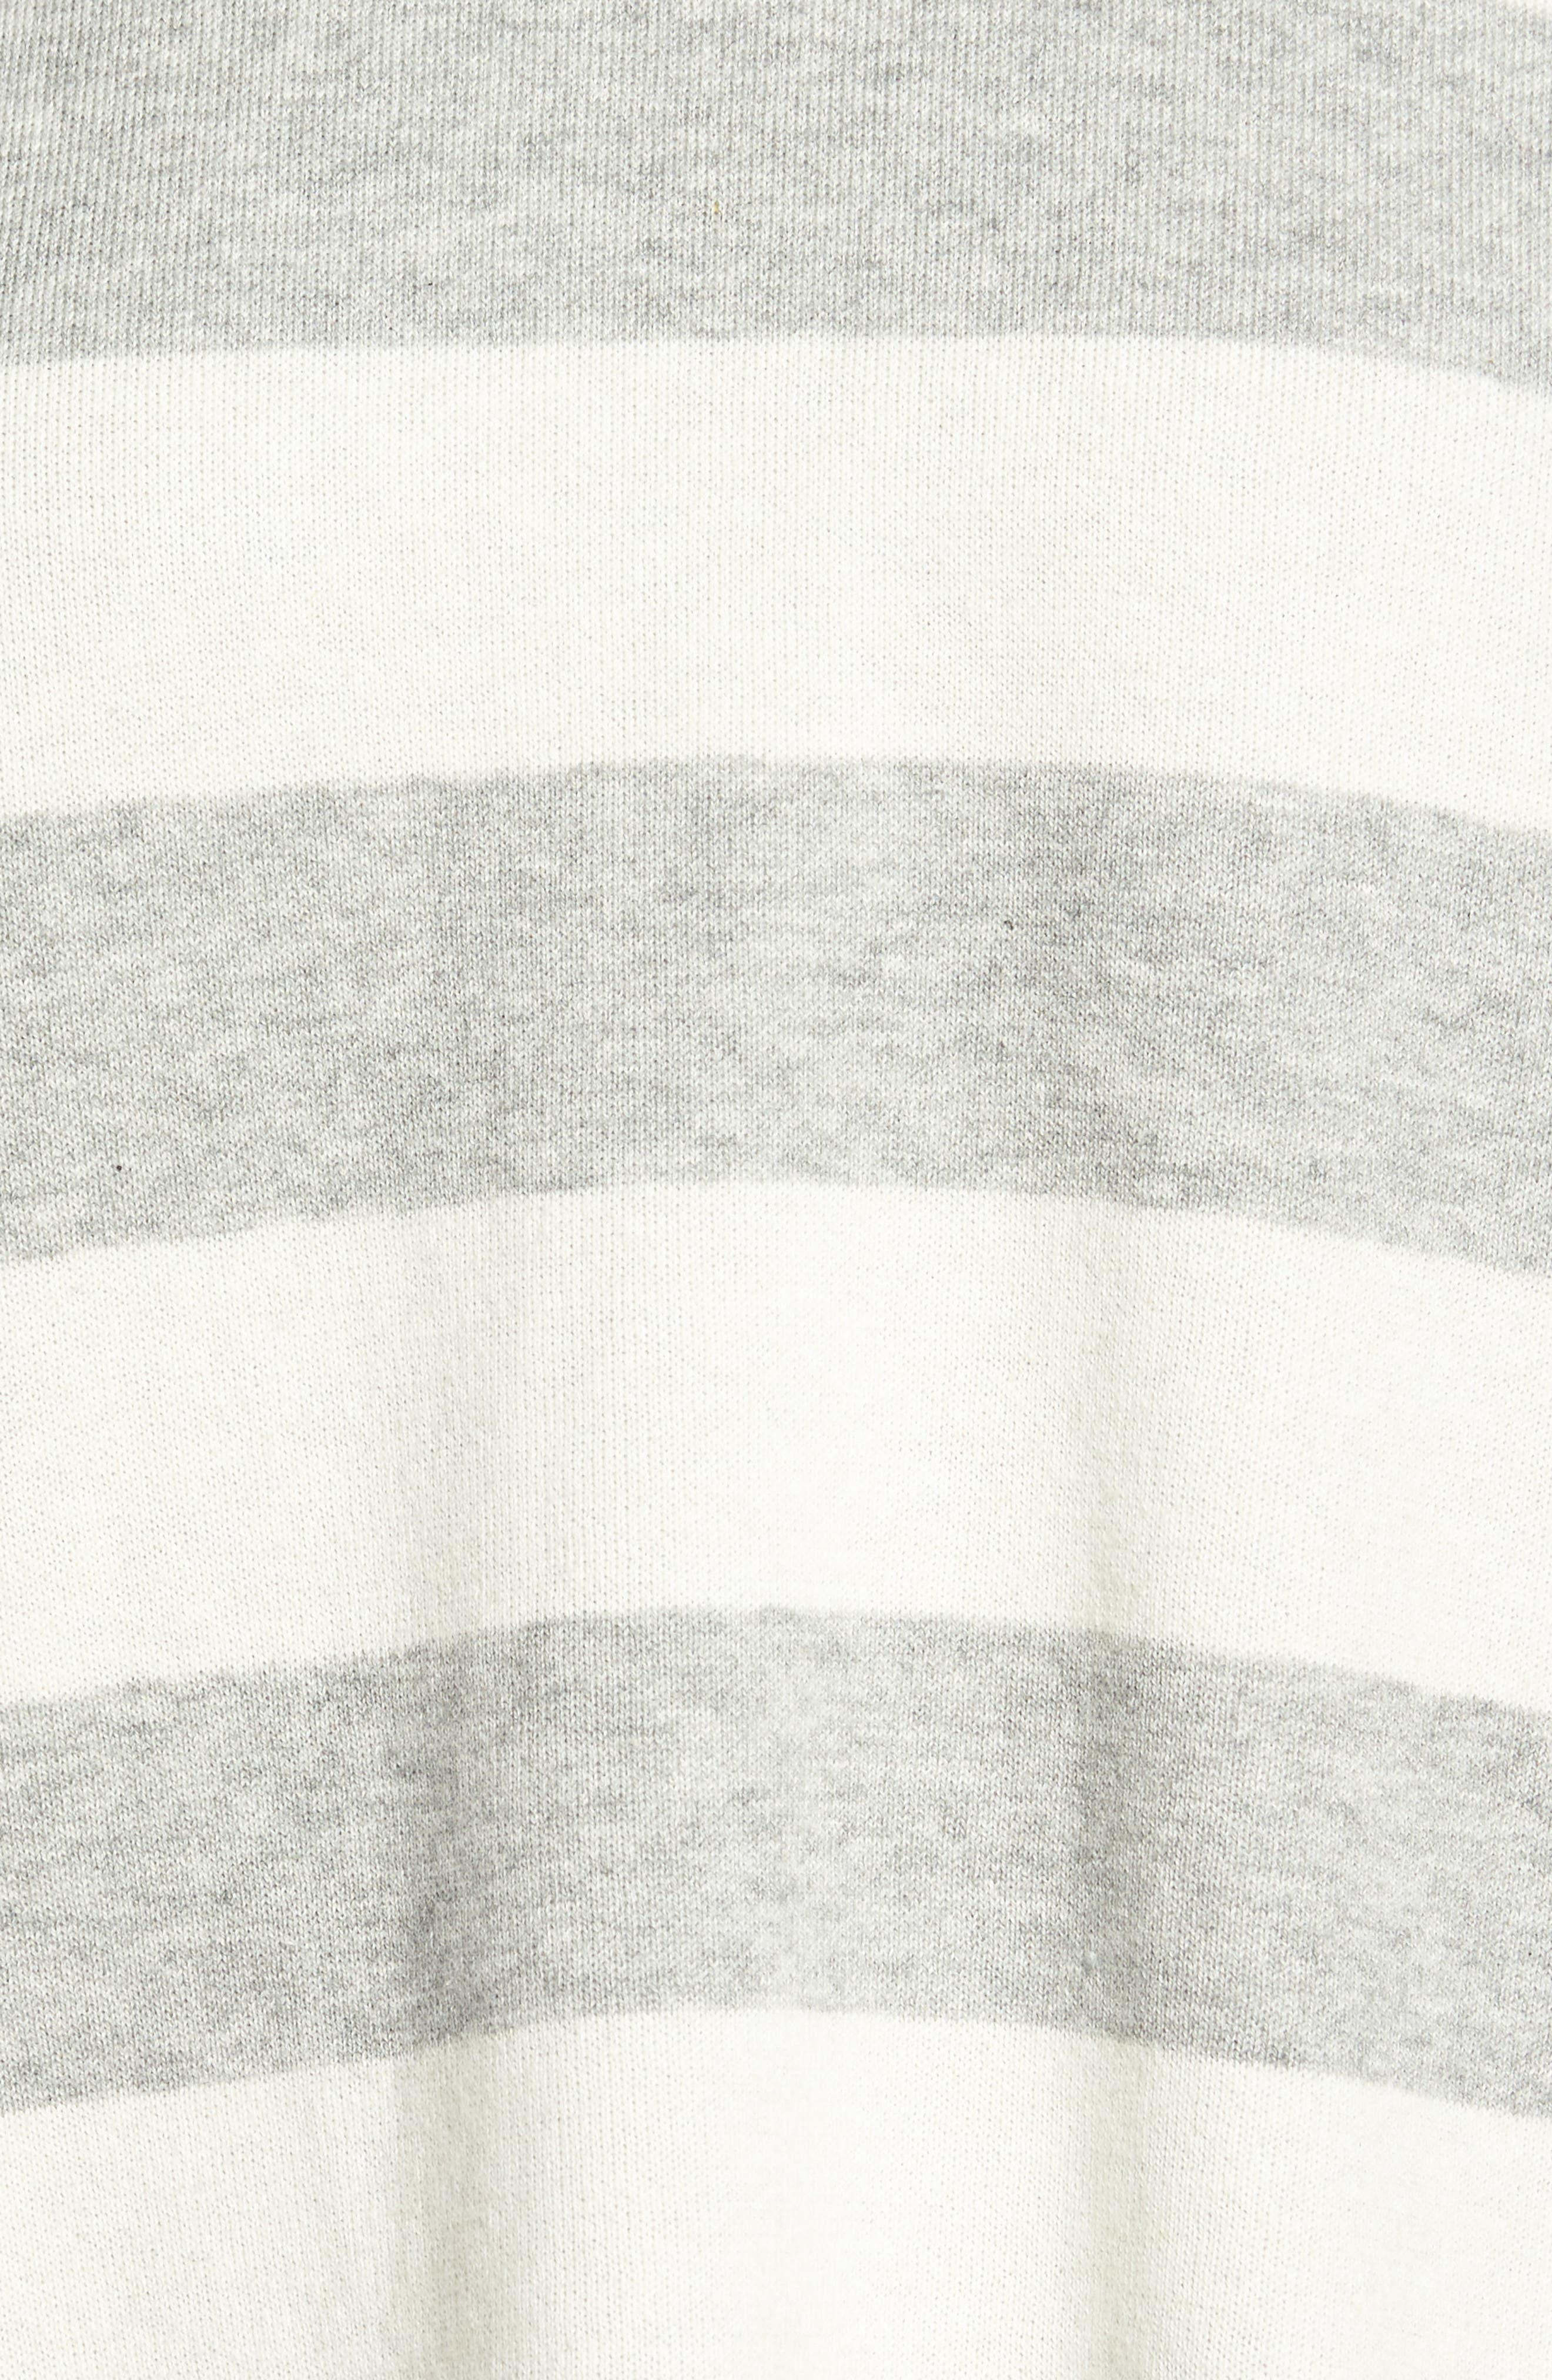 Stripe Organic Cotton Blend Top,                             Alternate thumbnail 5, color,                             Dark Pearl/ Soft White